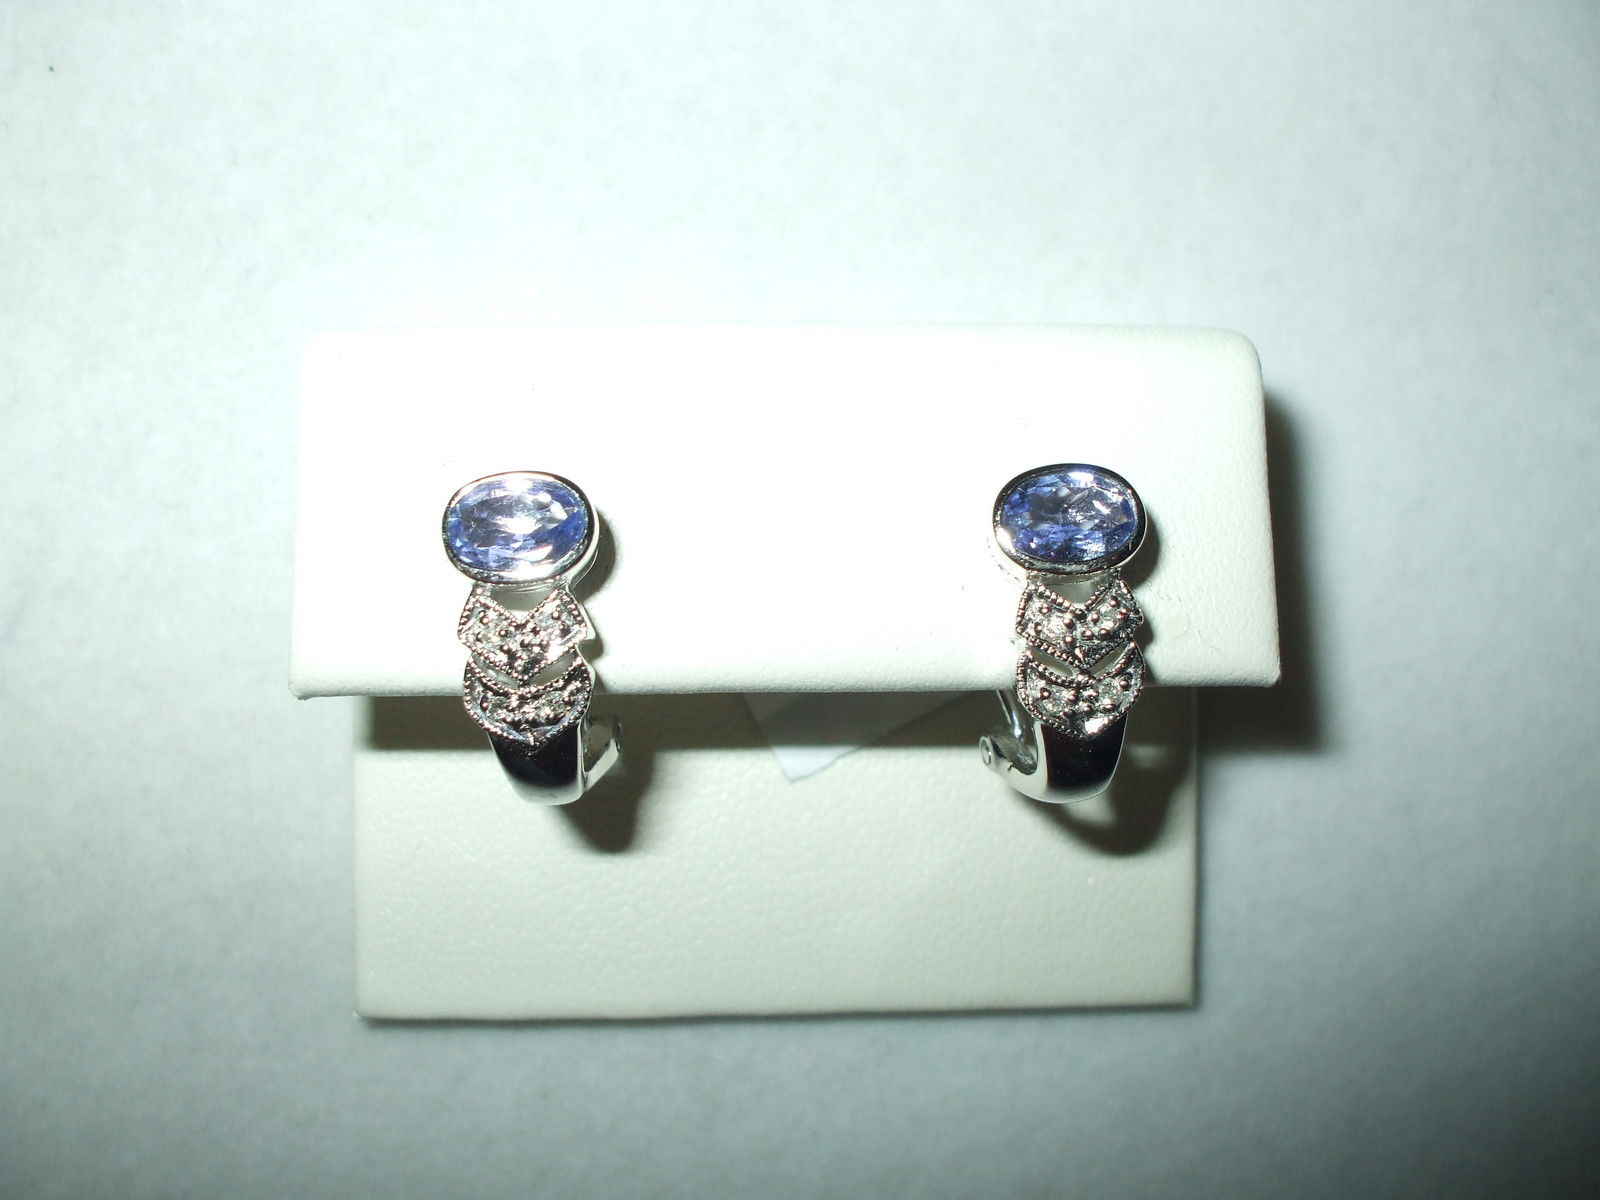 Genuine Tanzanite & Diamond French Clip Earrings 14K white gold NWT $1200